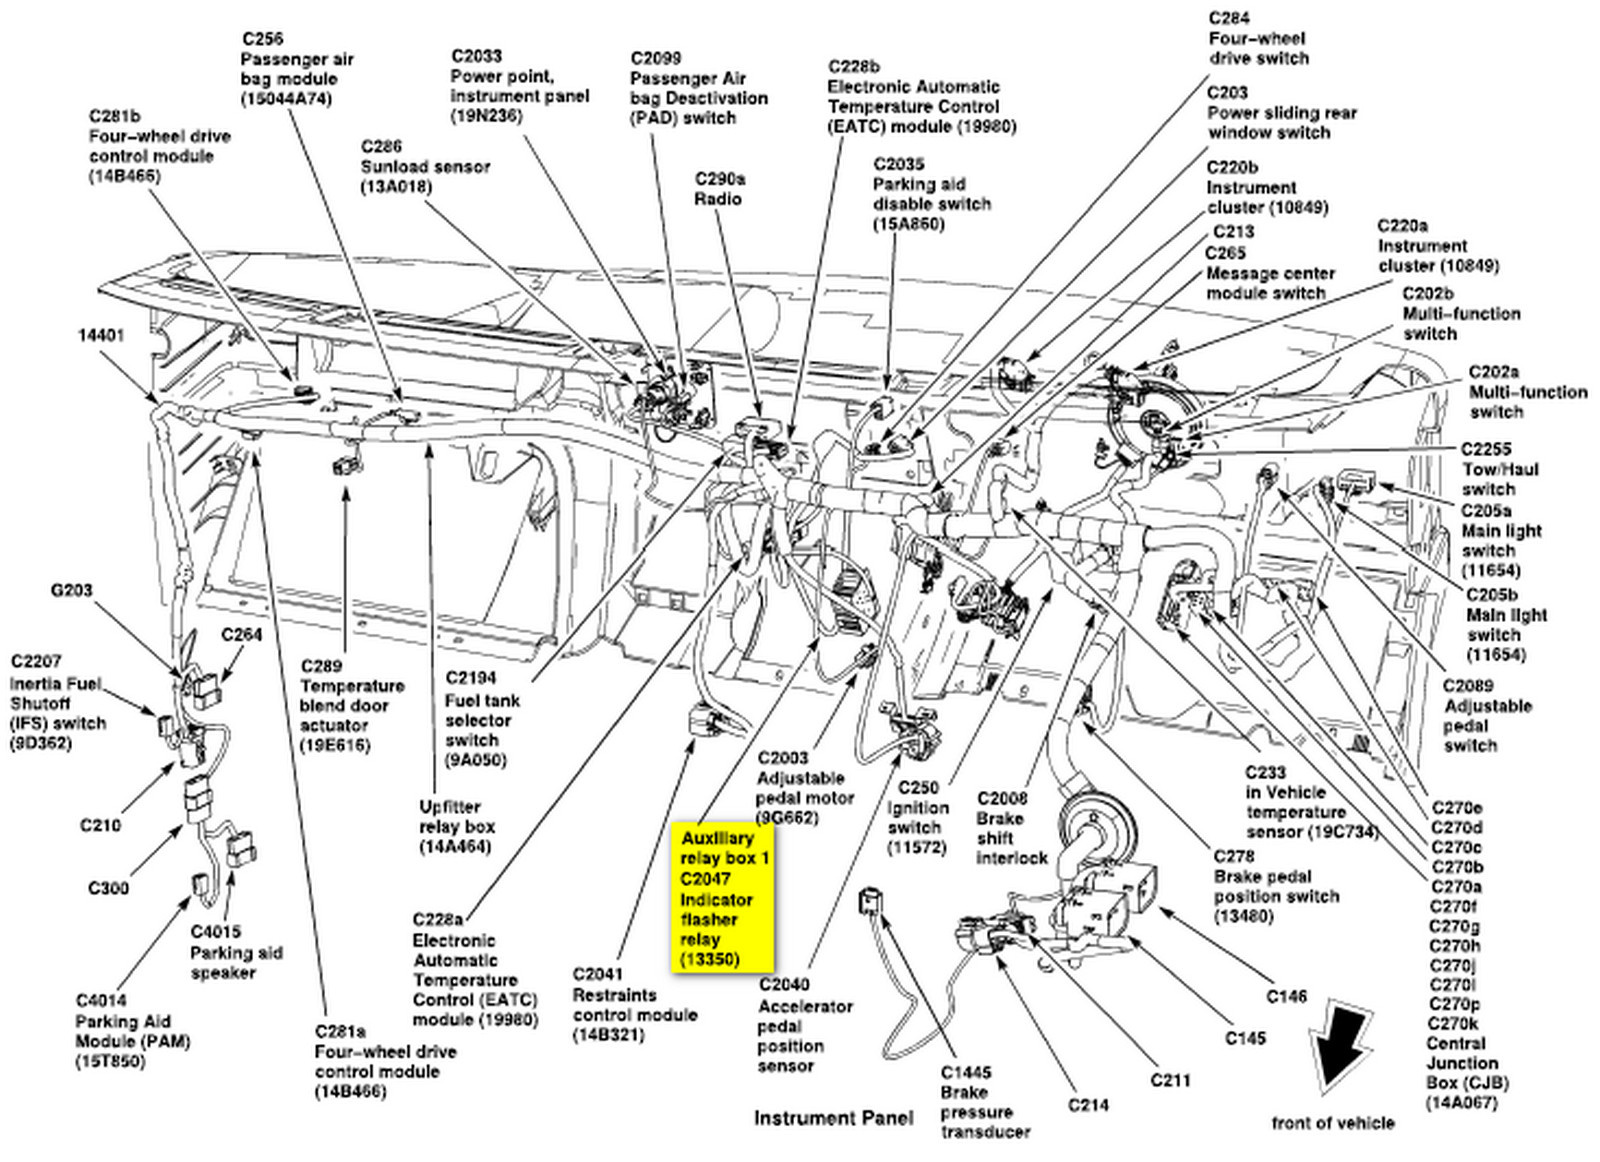 Ford F 150 Exhaust System Diagram B67c0fc08759f173 likewise 0qxg5 2003 Ford Taurus Fuse Box Diagram furthermore 2000 Hyundai Tiburon Wiring Diagram moreover 2ryfp Need Dyogram Steering Colum 1987 Ford F150 Tilt Wh as well Ford Ranger 2003 Fuse Box Diagram. on ford turn signal wiring diagram 2008 escape